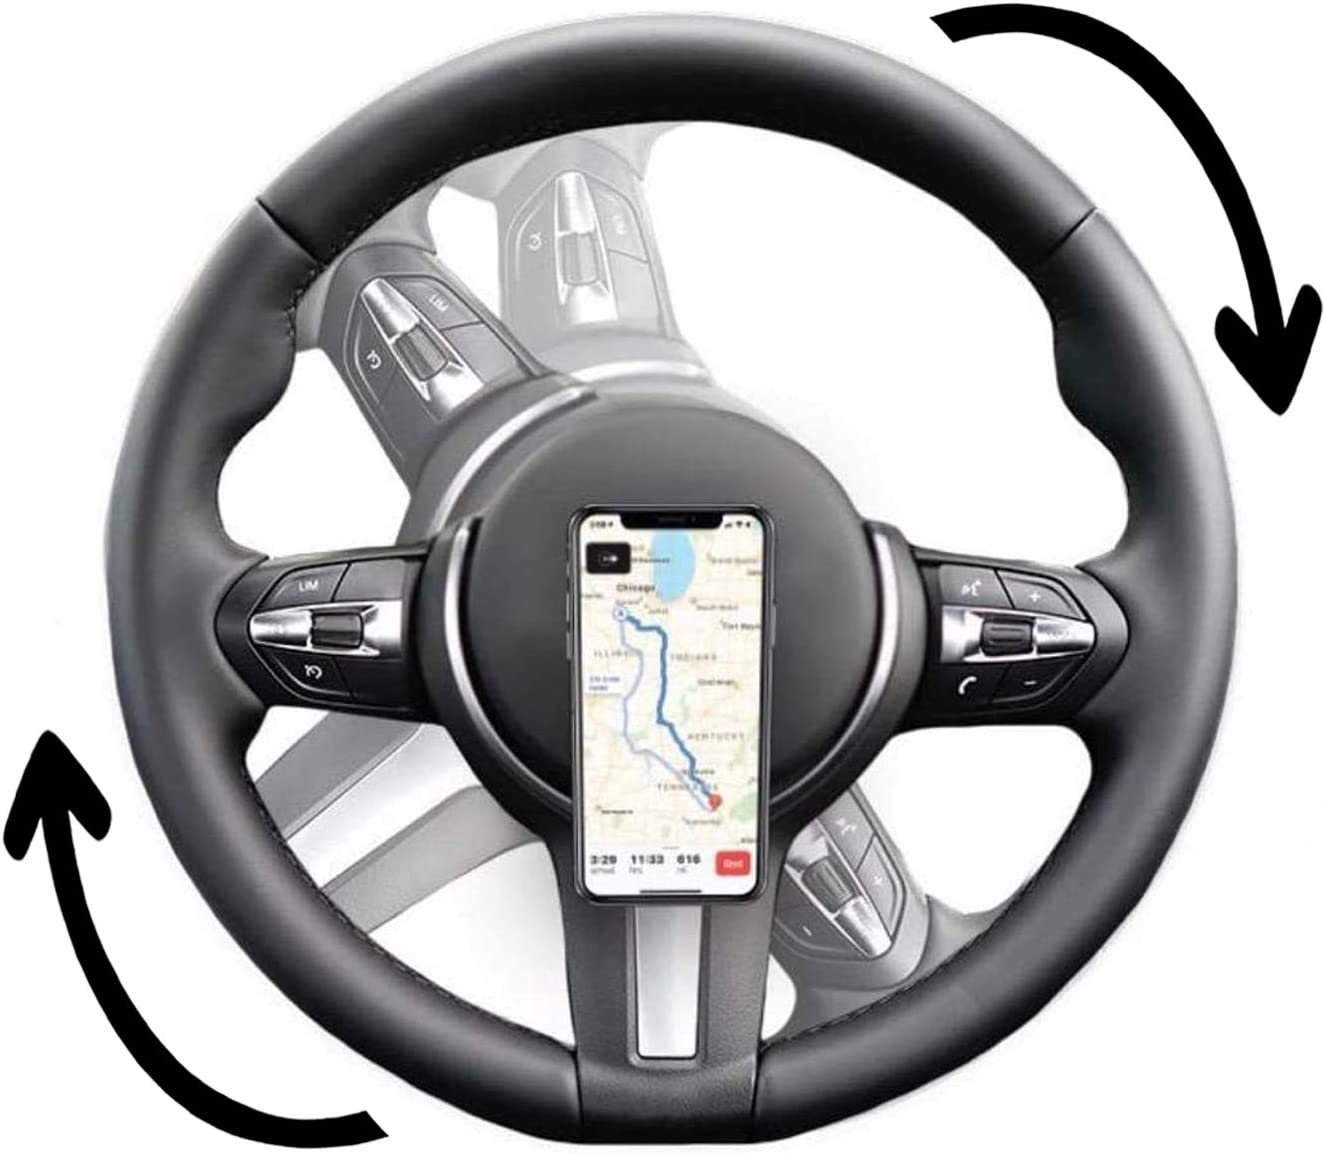 best magnetic steering wheel cell phone holder, best magnetic steering wheel phone holder, best magnetic steering wheel phone mount, magnetic cell phone holder for steering wheel, best magnetic cell phone holder for steering wheel, magnetic steering wheel phone holder, magnetic steering wheel cell phone holder, phone steering wheel, steering wheel phone holder amazon, steering wheel phone holder legal, phone steering wheel mount, steering wheel mobile phone holder, steering wheel phone holder